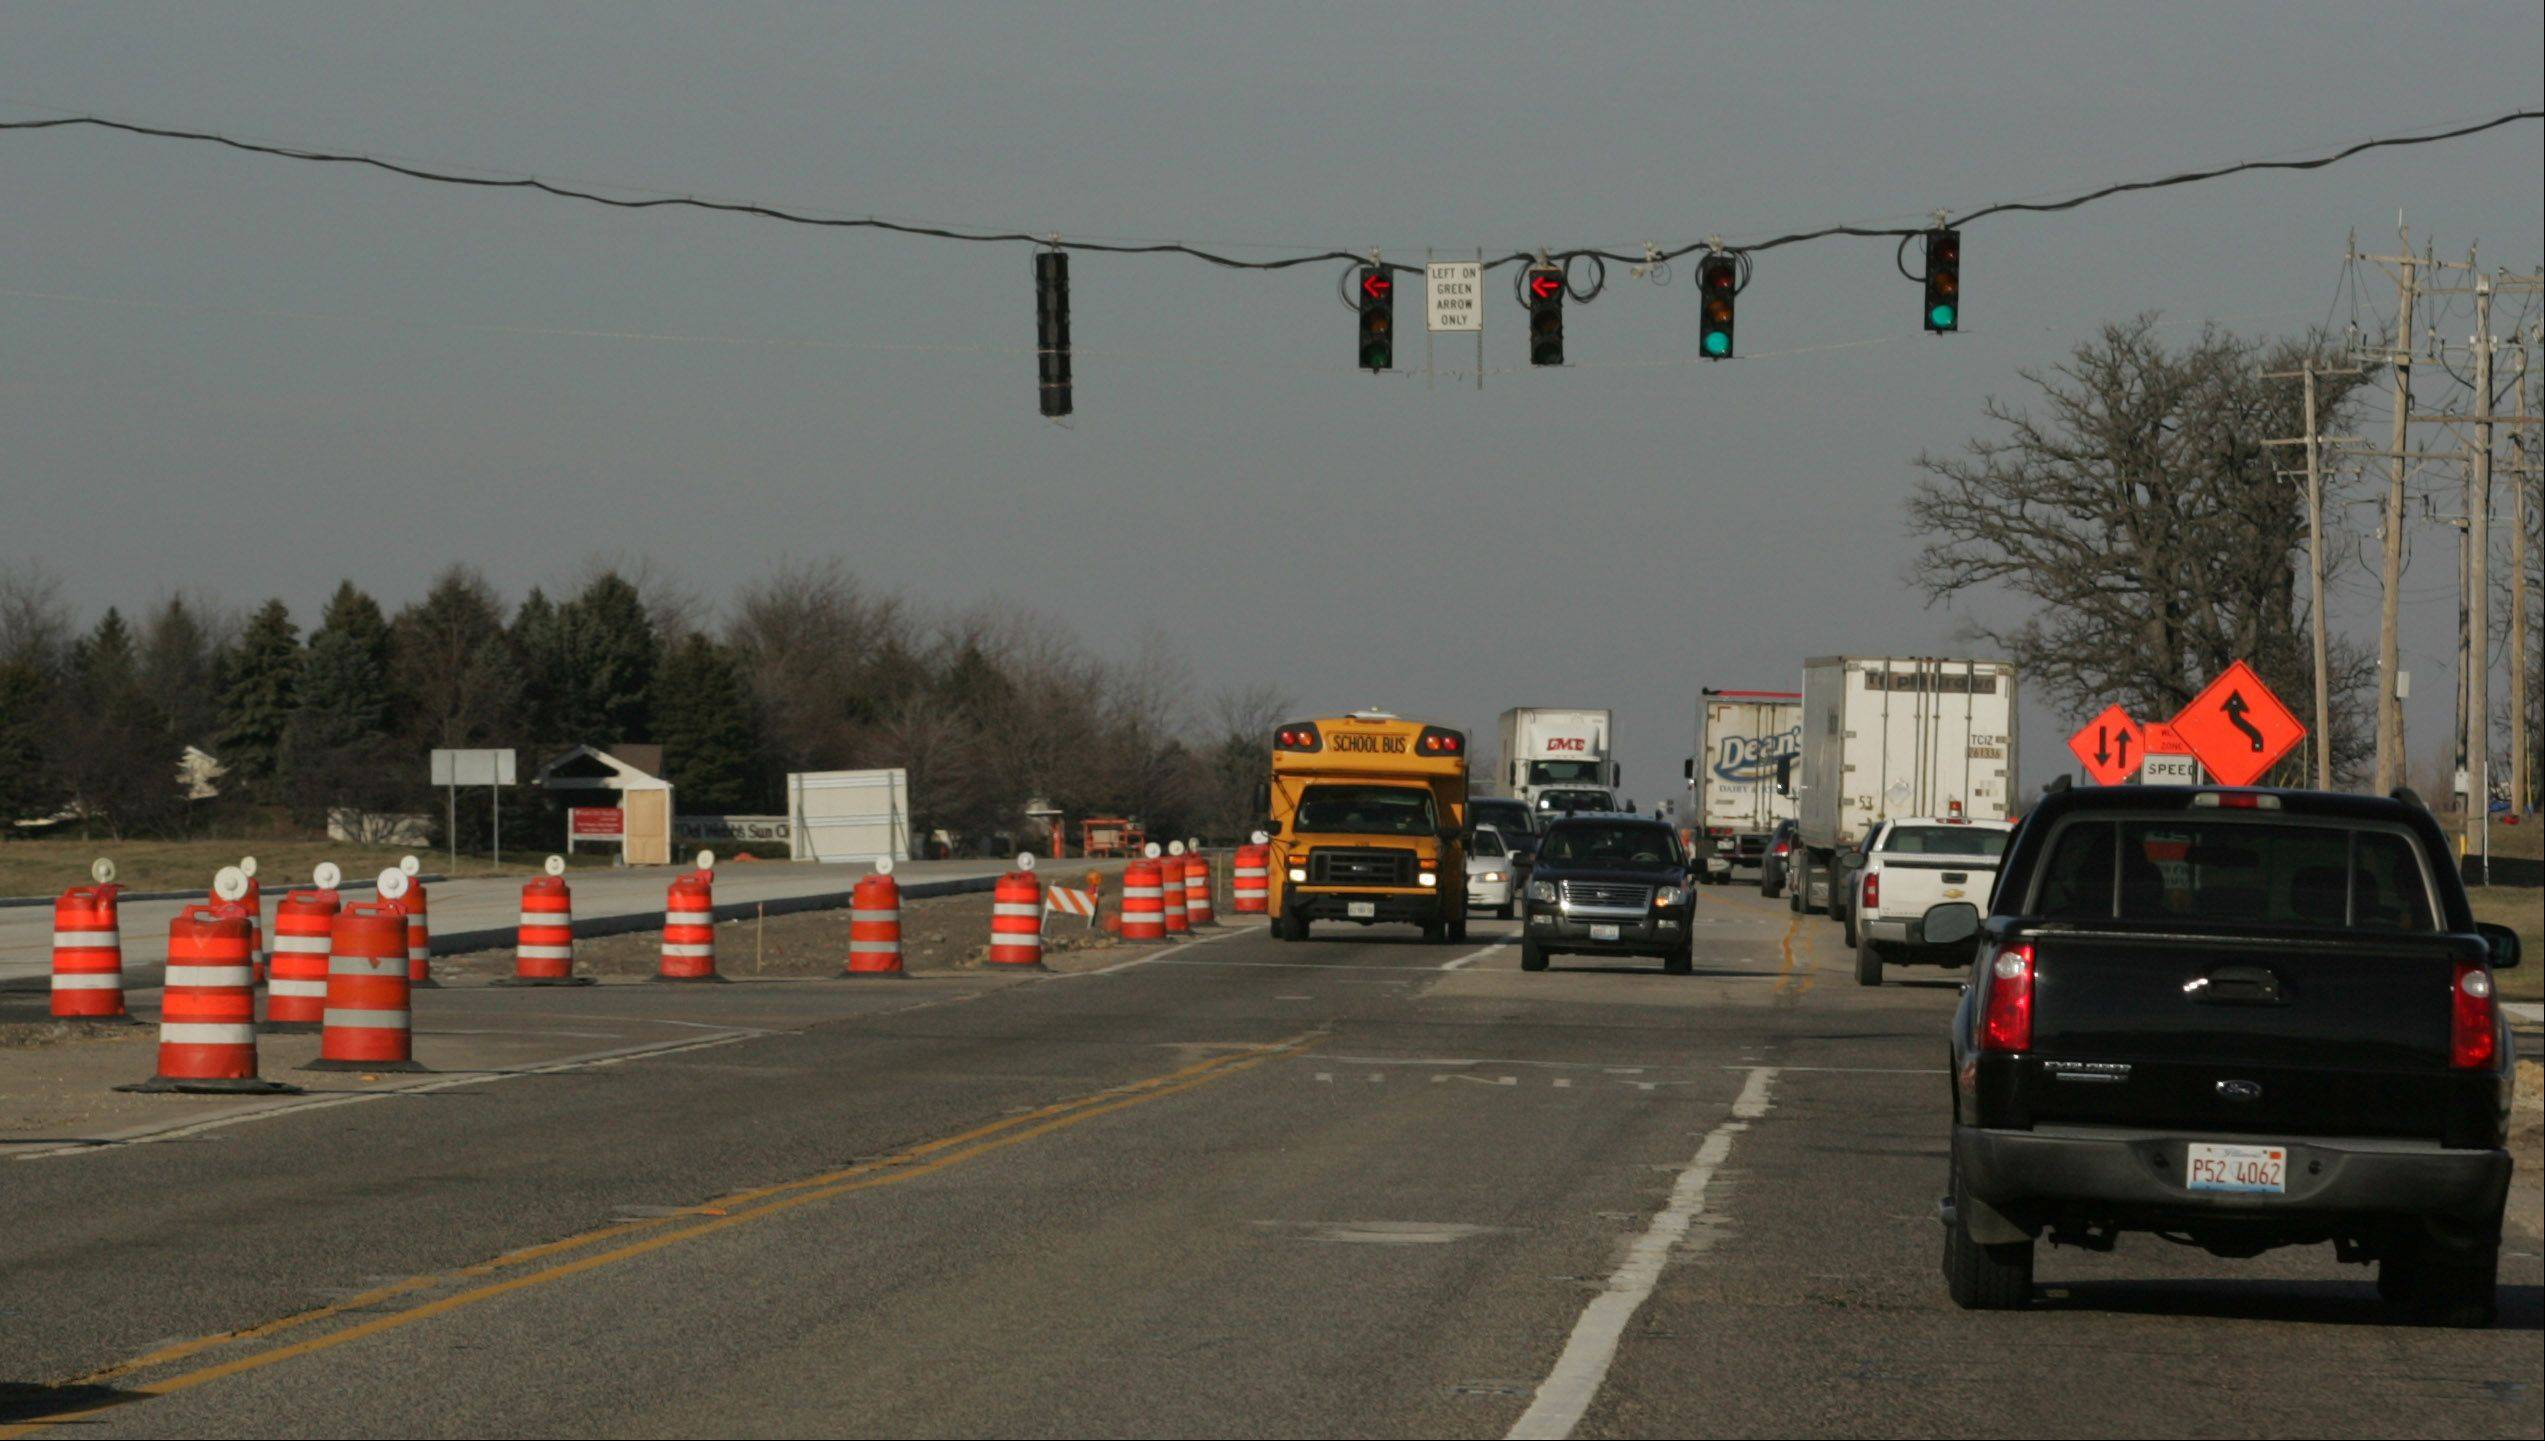 Traffic moves through the construction zone at the Route 47 and Interstate 90 interchange in Huntley. Nearly 1,000 residents from the neighboring Sun City subdivision have asked the Illinois Tollway Authority to put up a sound barrier between Sun City and the tollway. Residents are upset about traffic noise and say it has disrupted their quality of living.